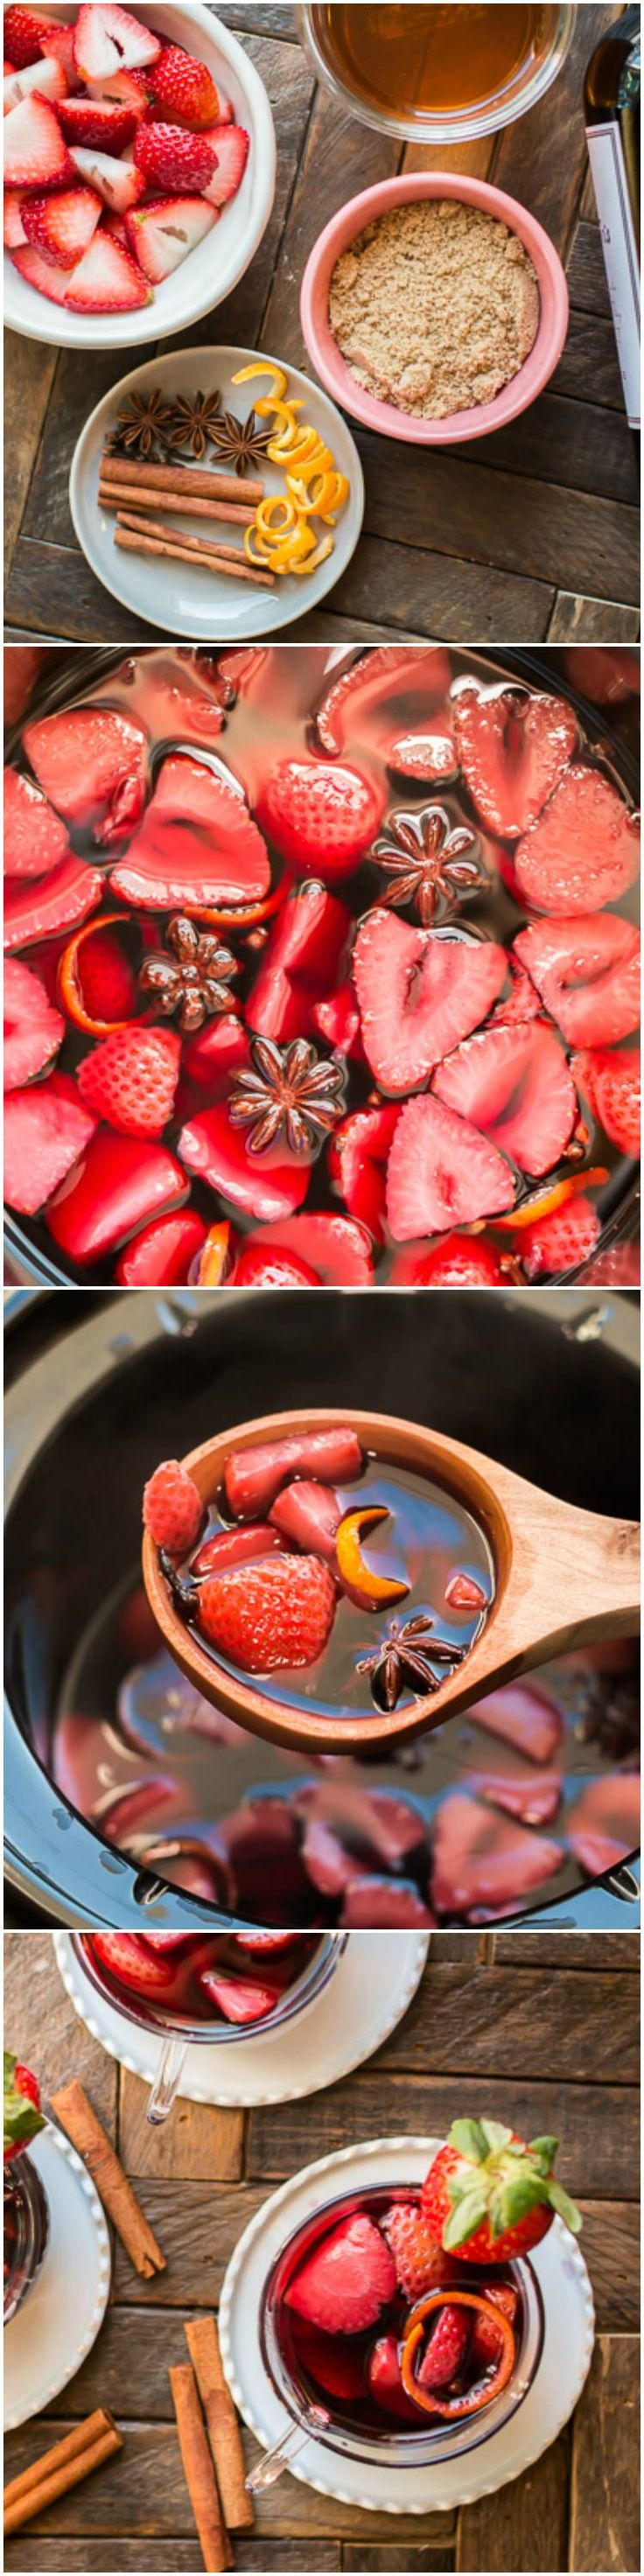 Slow Cooker Strawberry Mulled Wine. Throw a few ingredients into the crock pot for this delicious spiced wine.